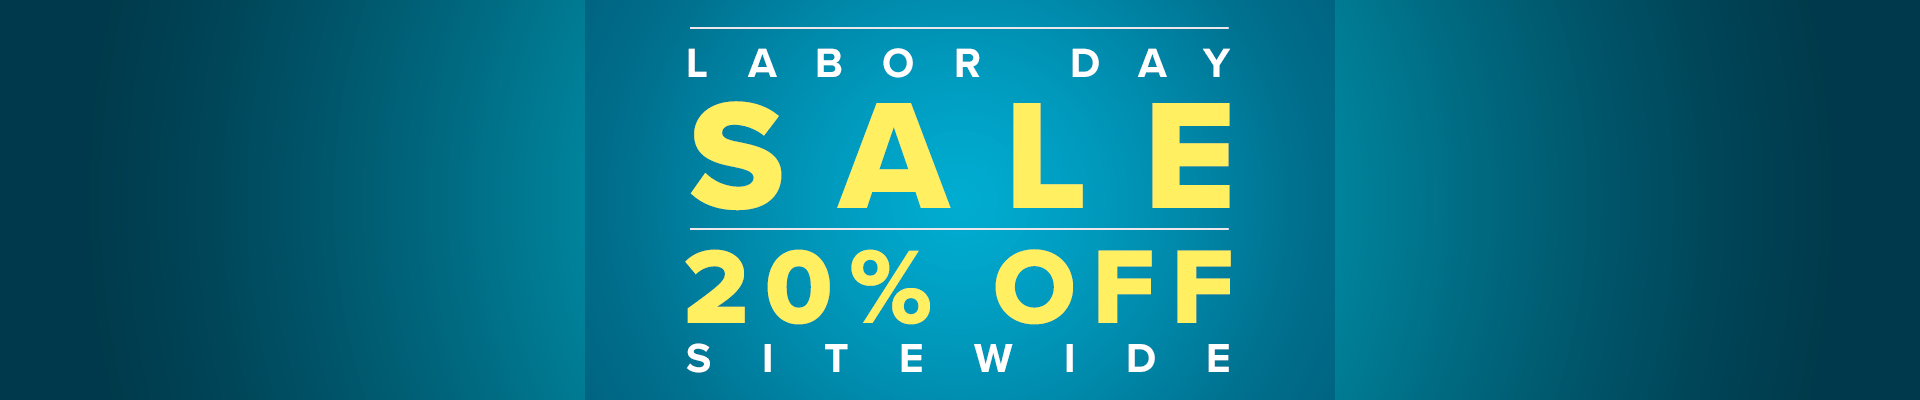 Labor Day Sale - 20% Off Sitewide